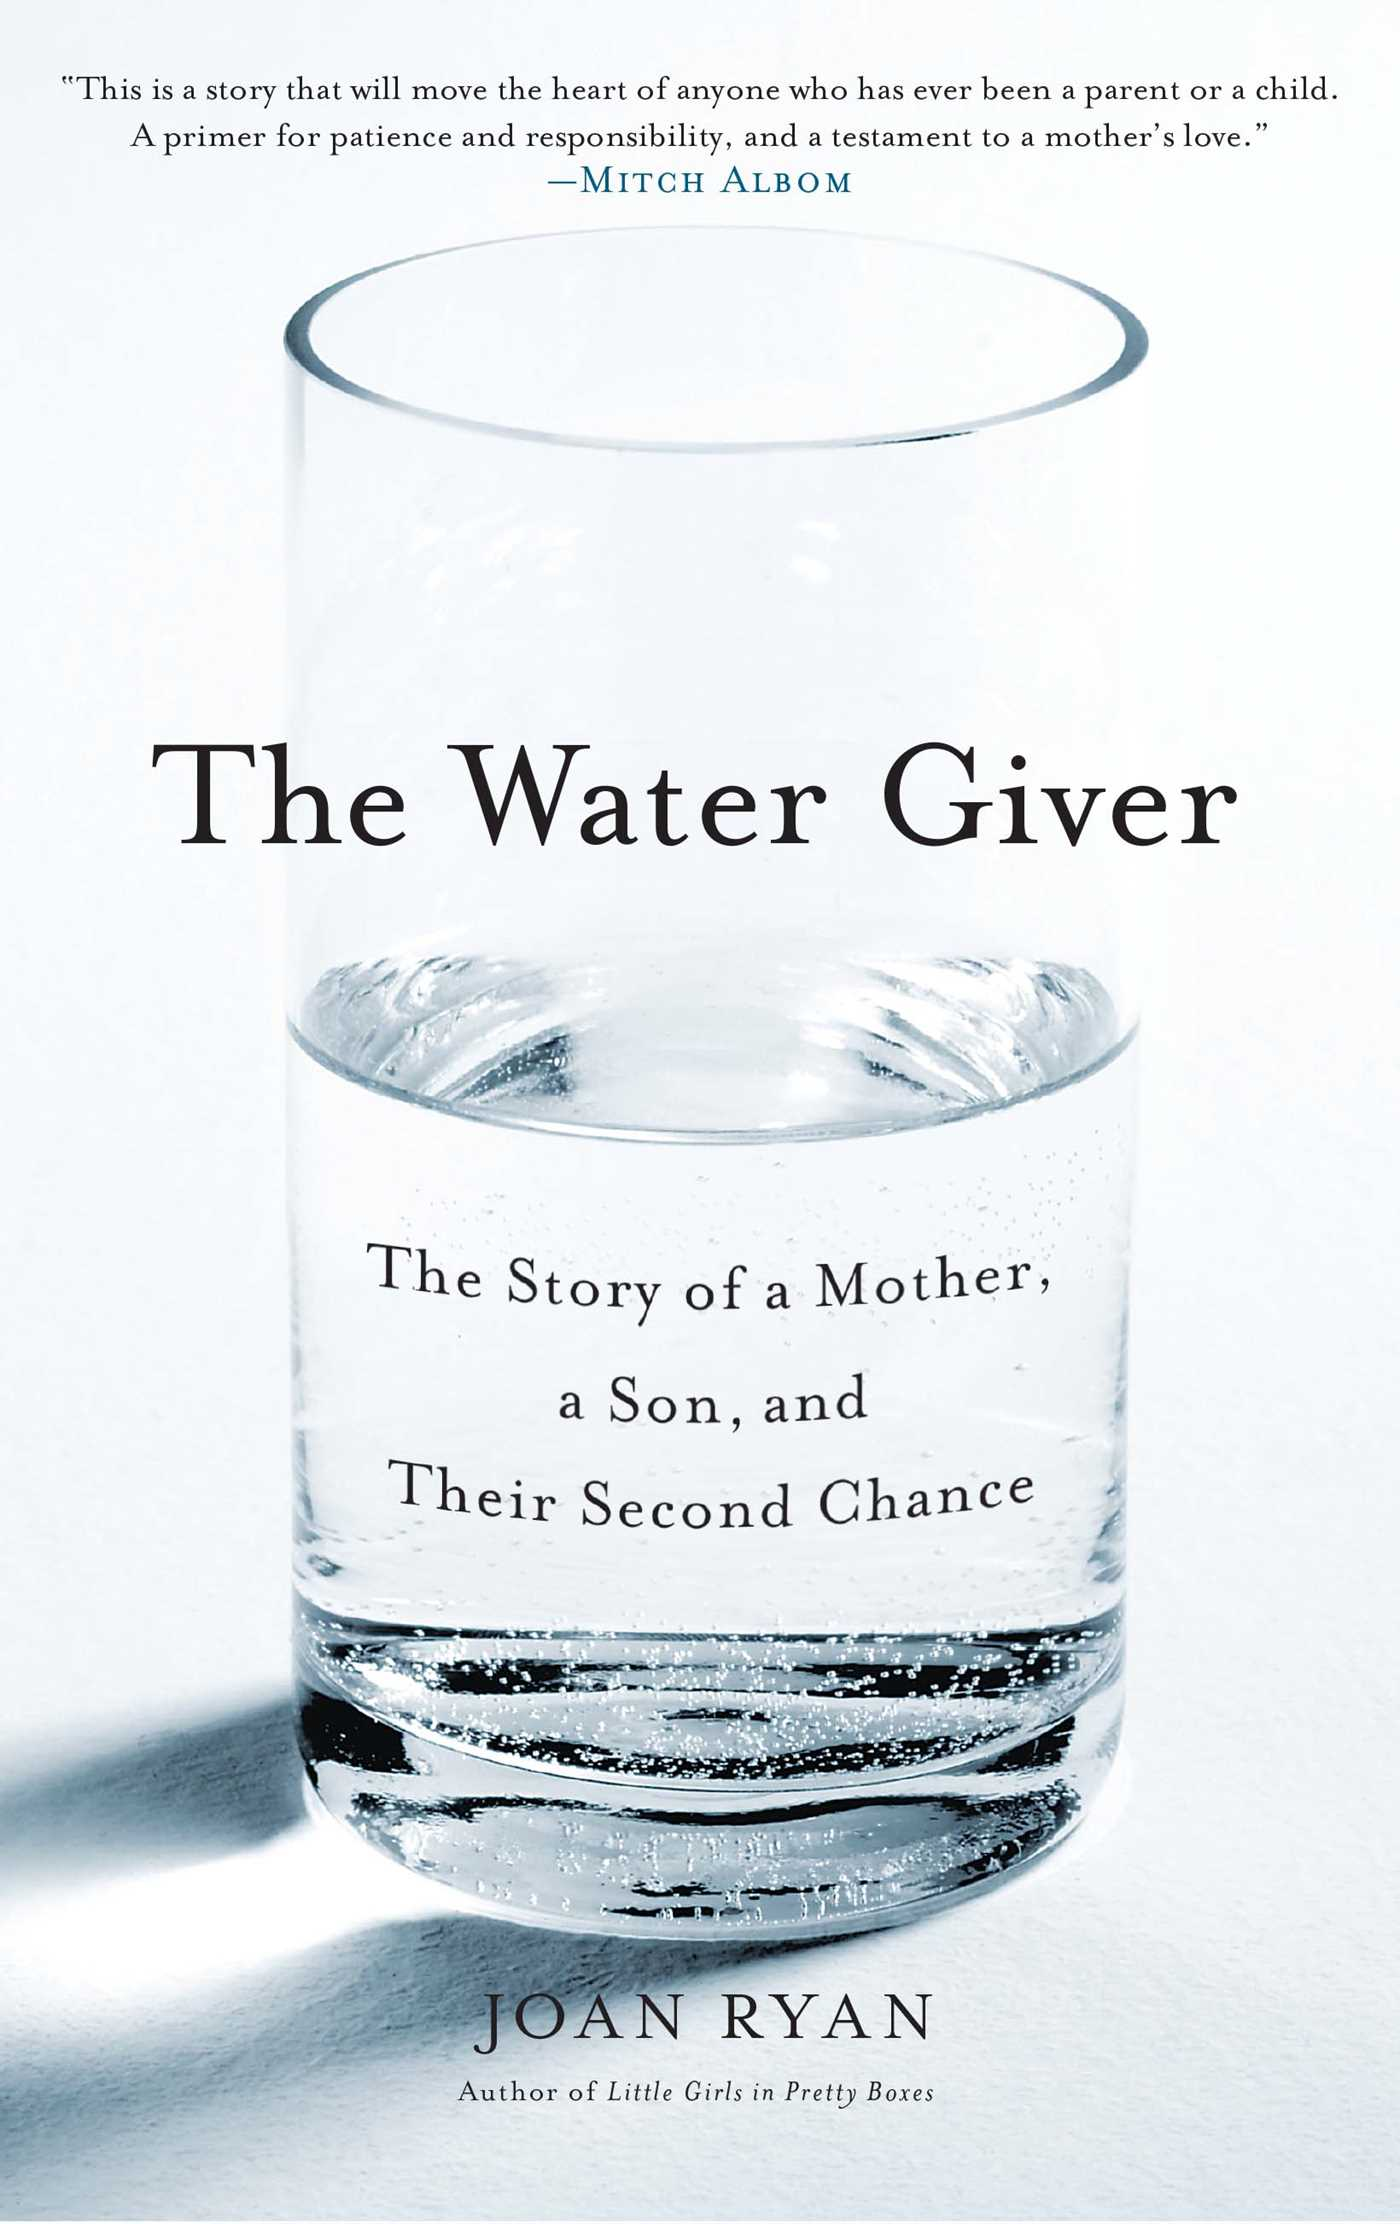 The-water-giver-9781416576532_hr